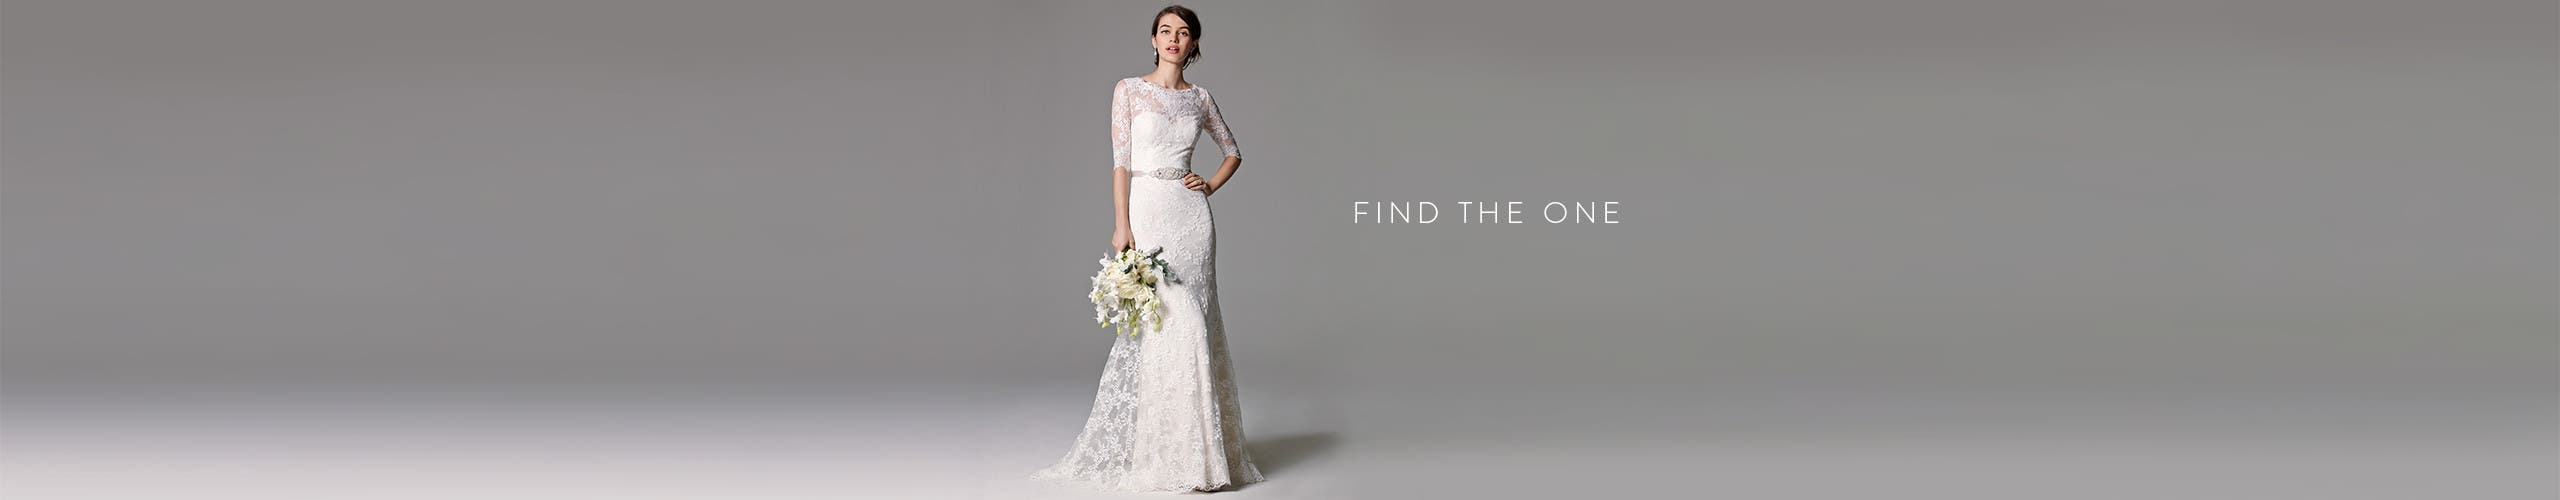 Find the one: wedding dresses online and in stores.